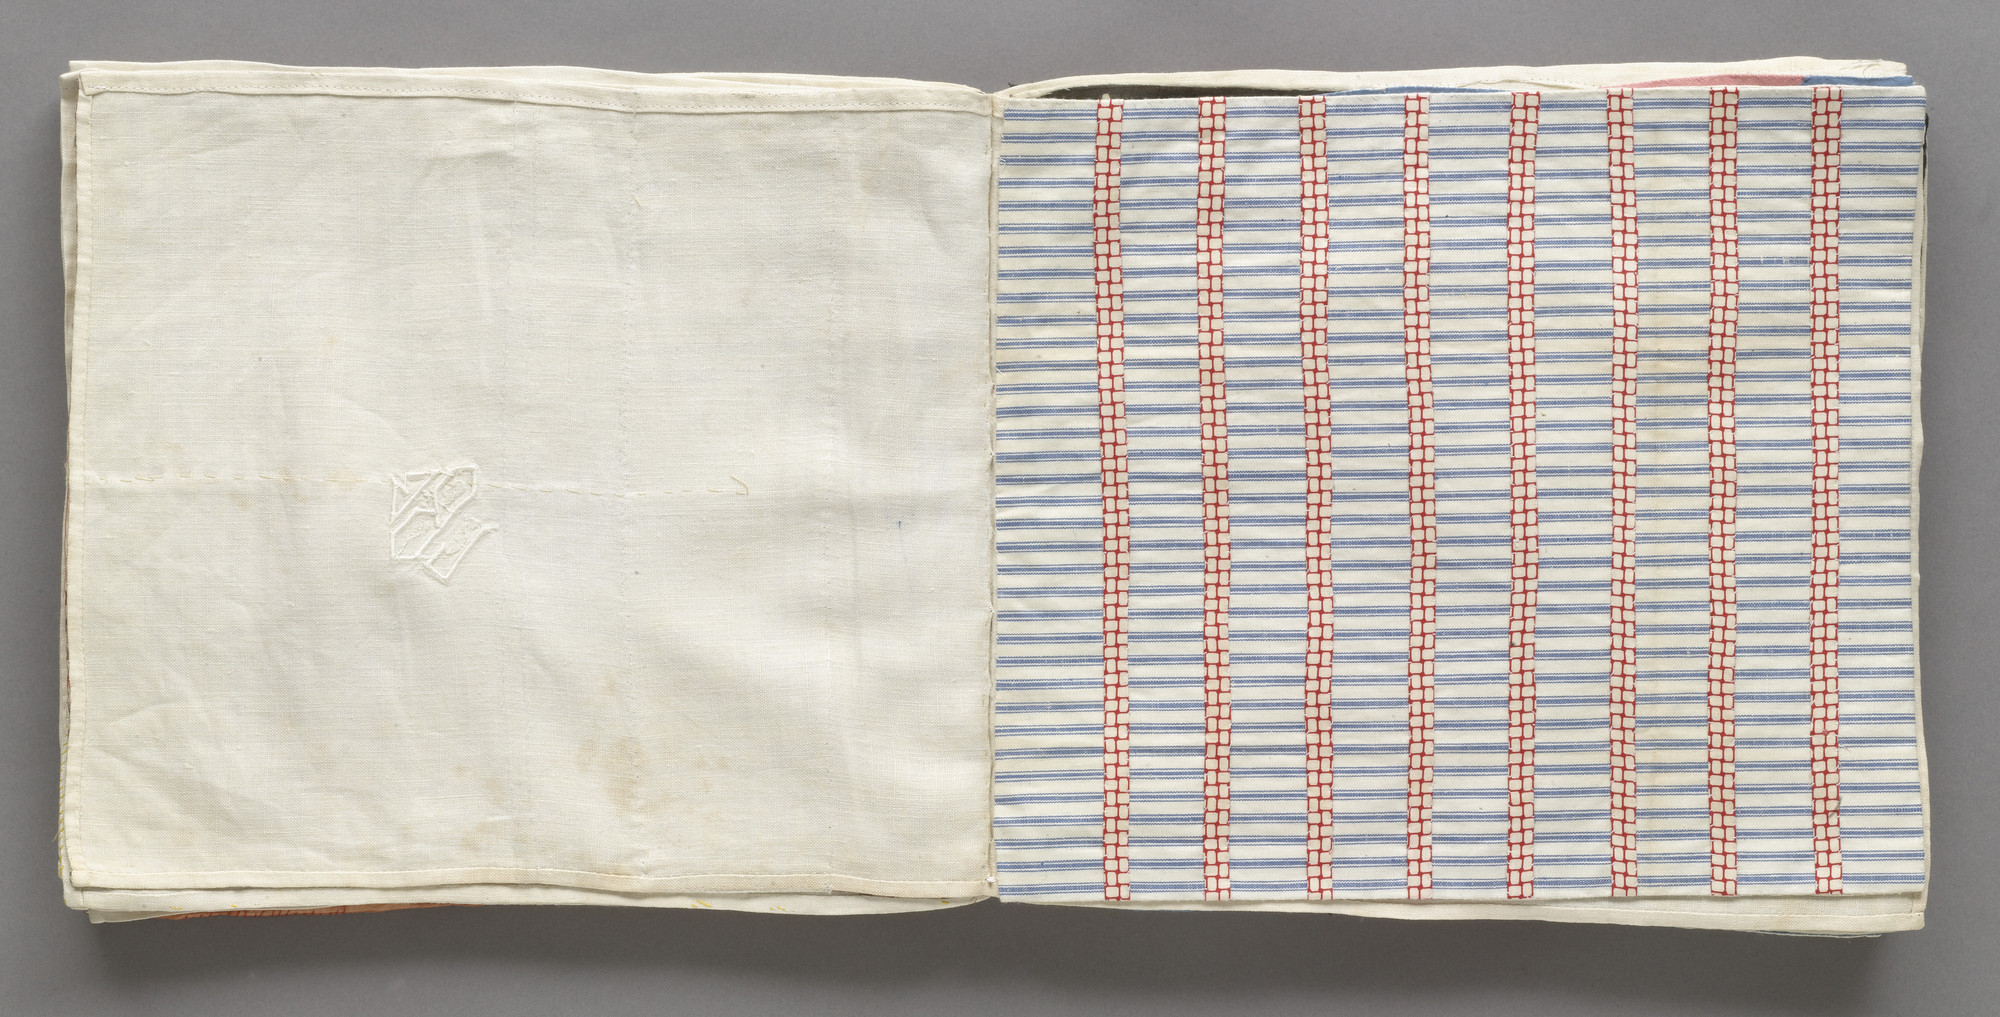 Louise Bourgeois. Untitled, no. 17 of 34, from the illustrated book, Ode à l'Oubli. 2002